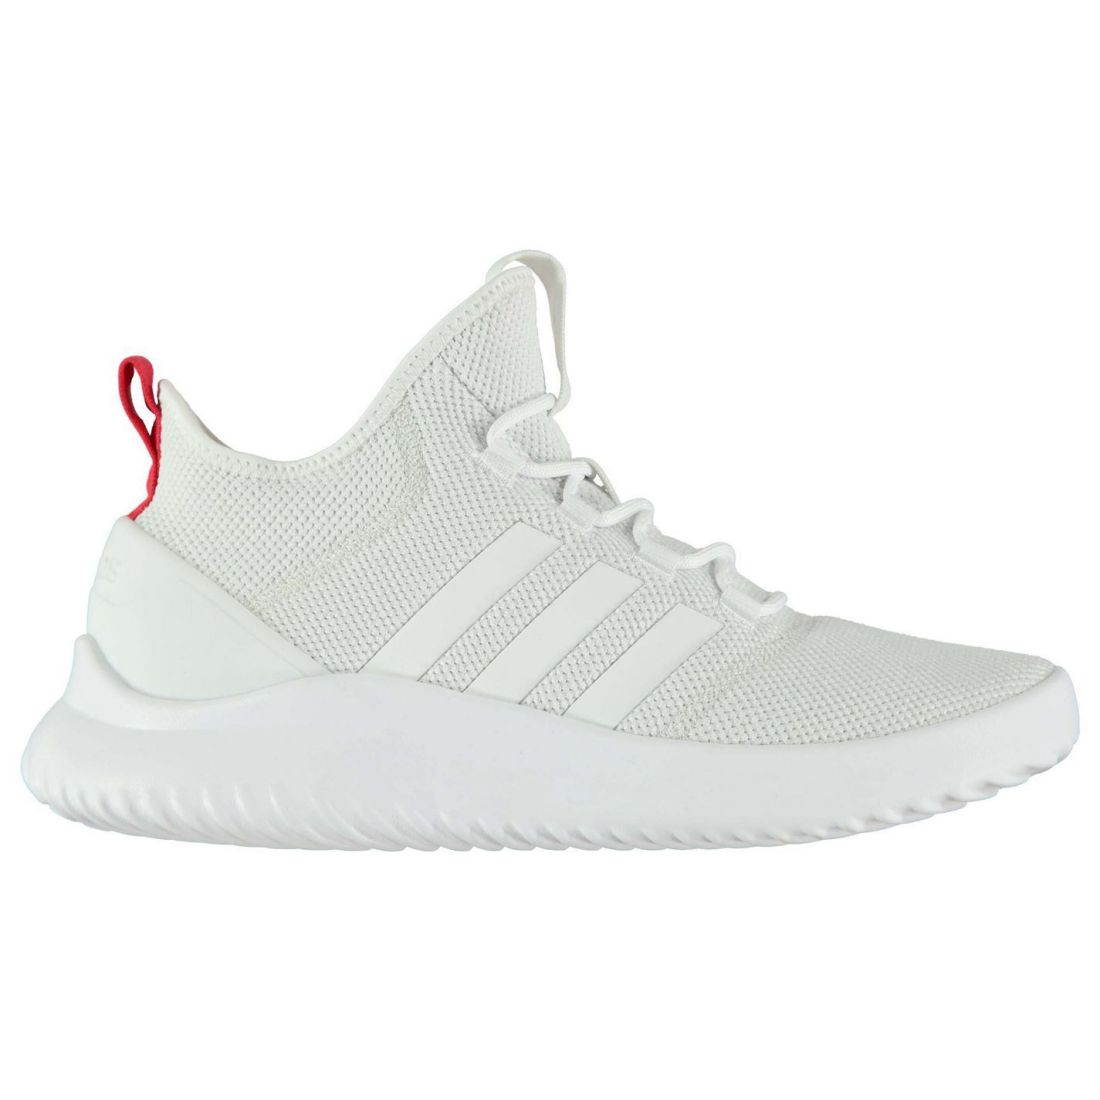 new concept 4dd56 e3bc5 Details about adidas Cloudfoam Ultimate B Ball Sneakers Mens Gents Runners  Laces Fastened Knit